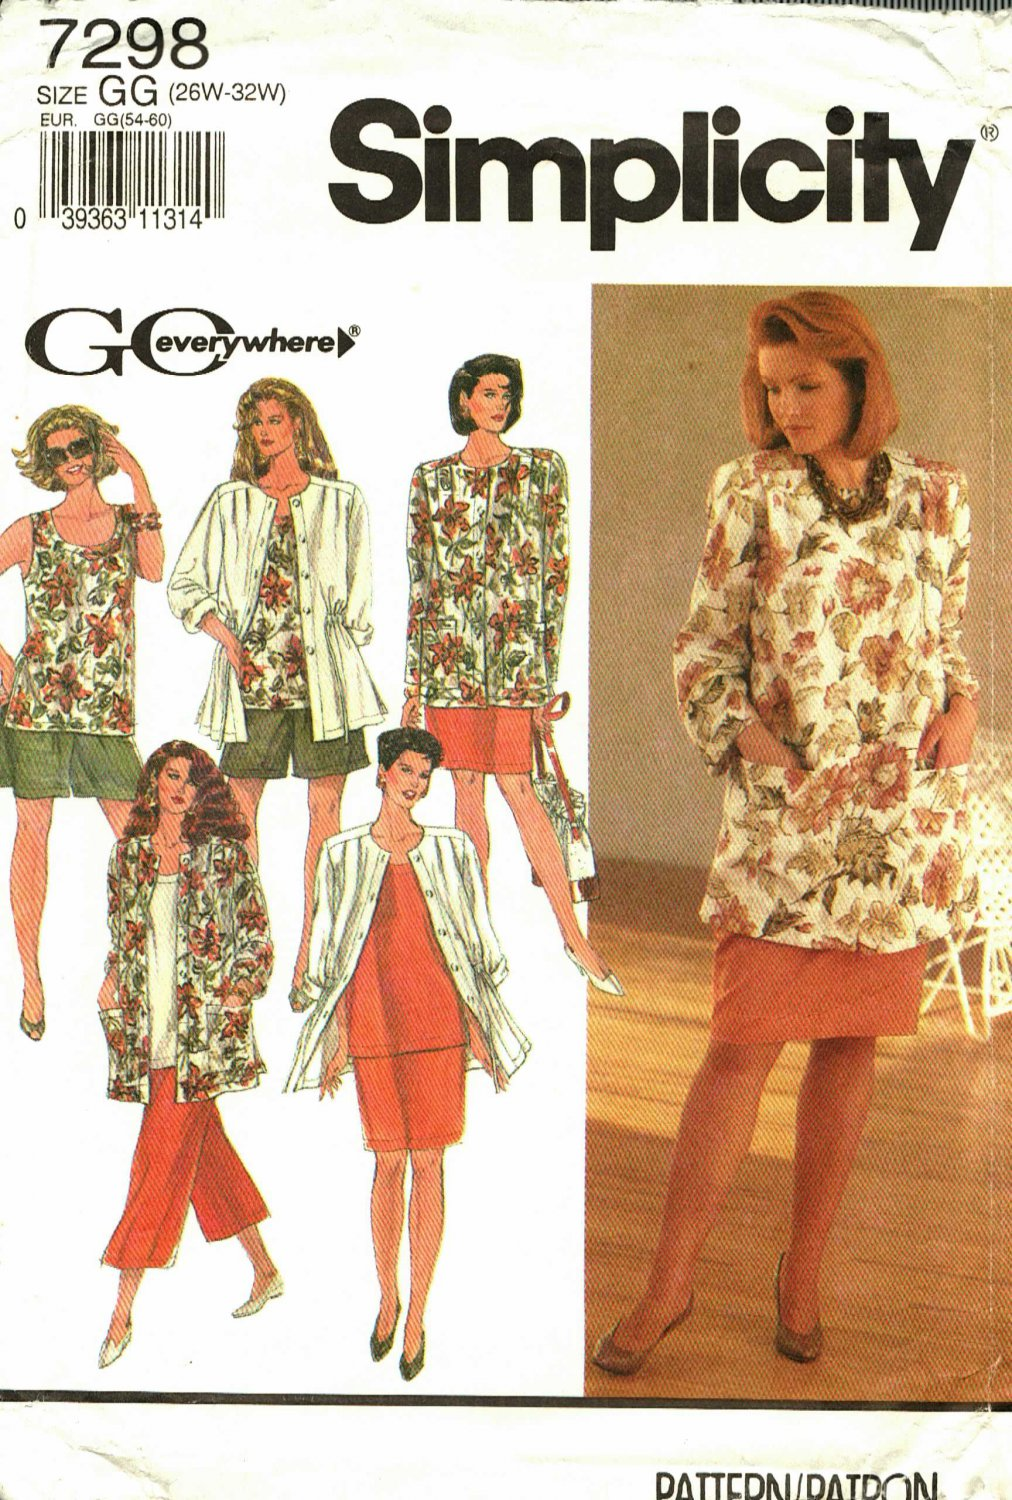 Simplicity 7298 size 26w 28w 30w 32w may be missing pieces, 50 cents plus shipping